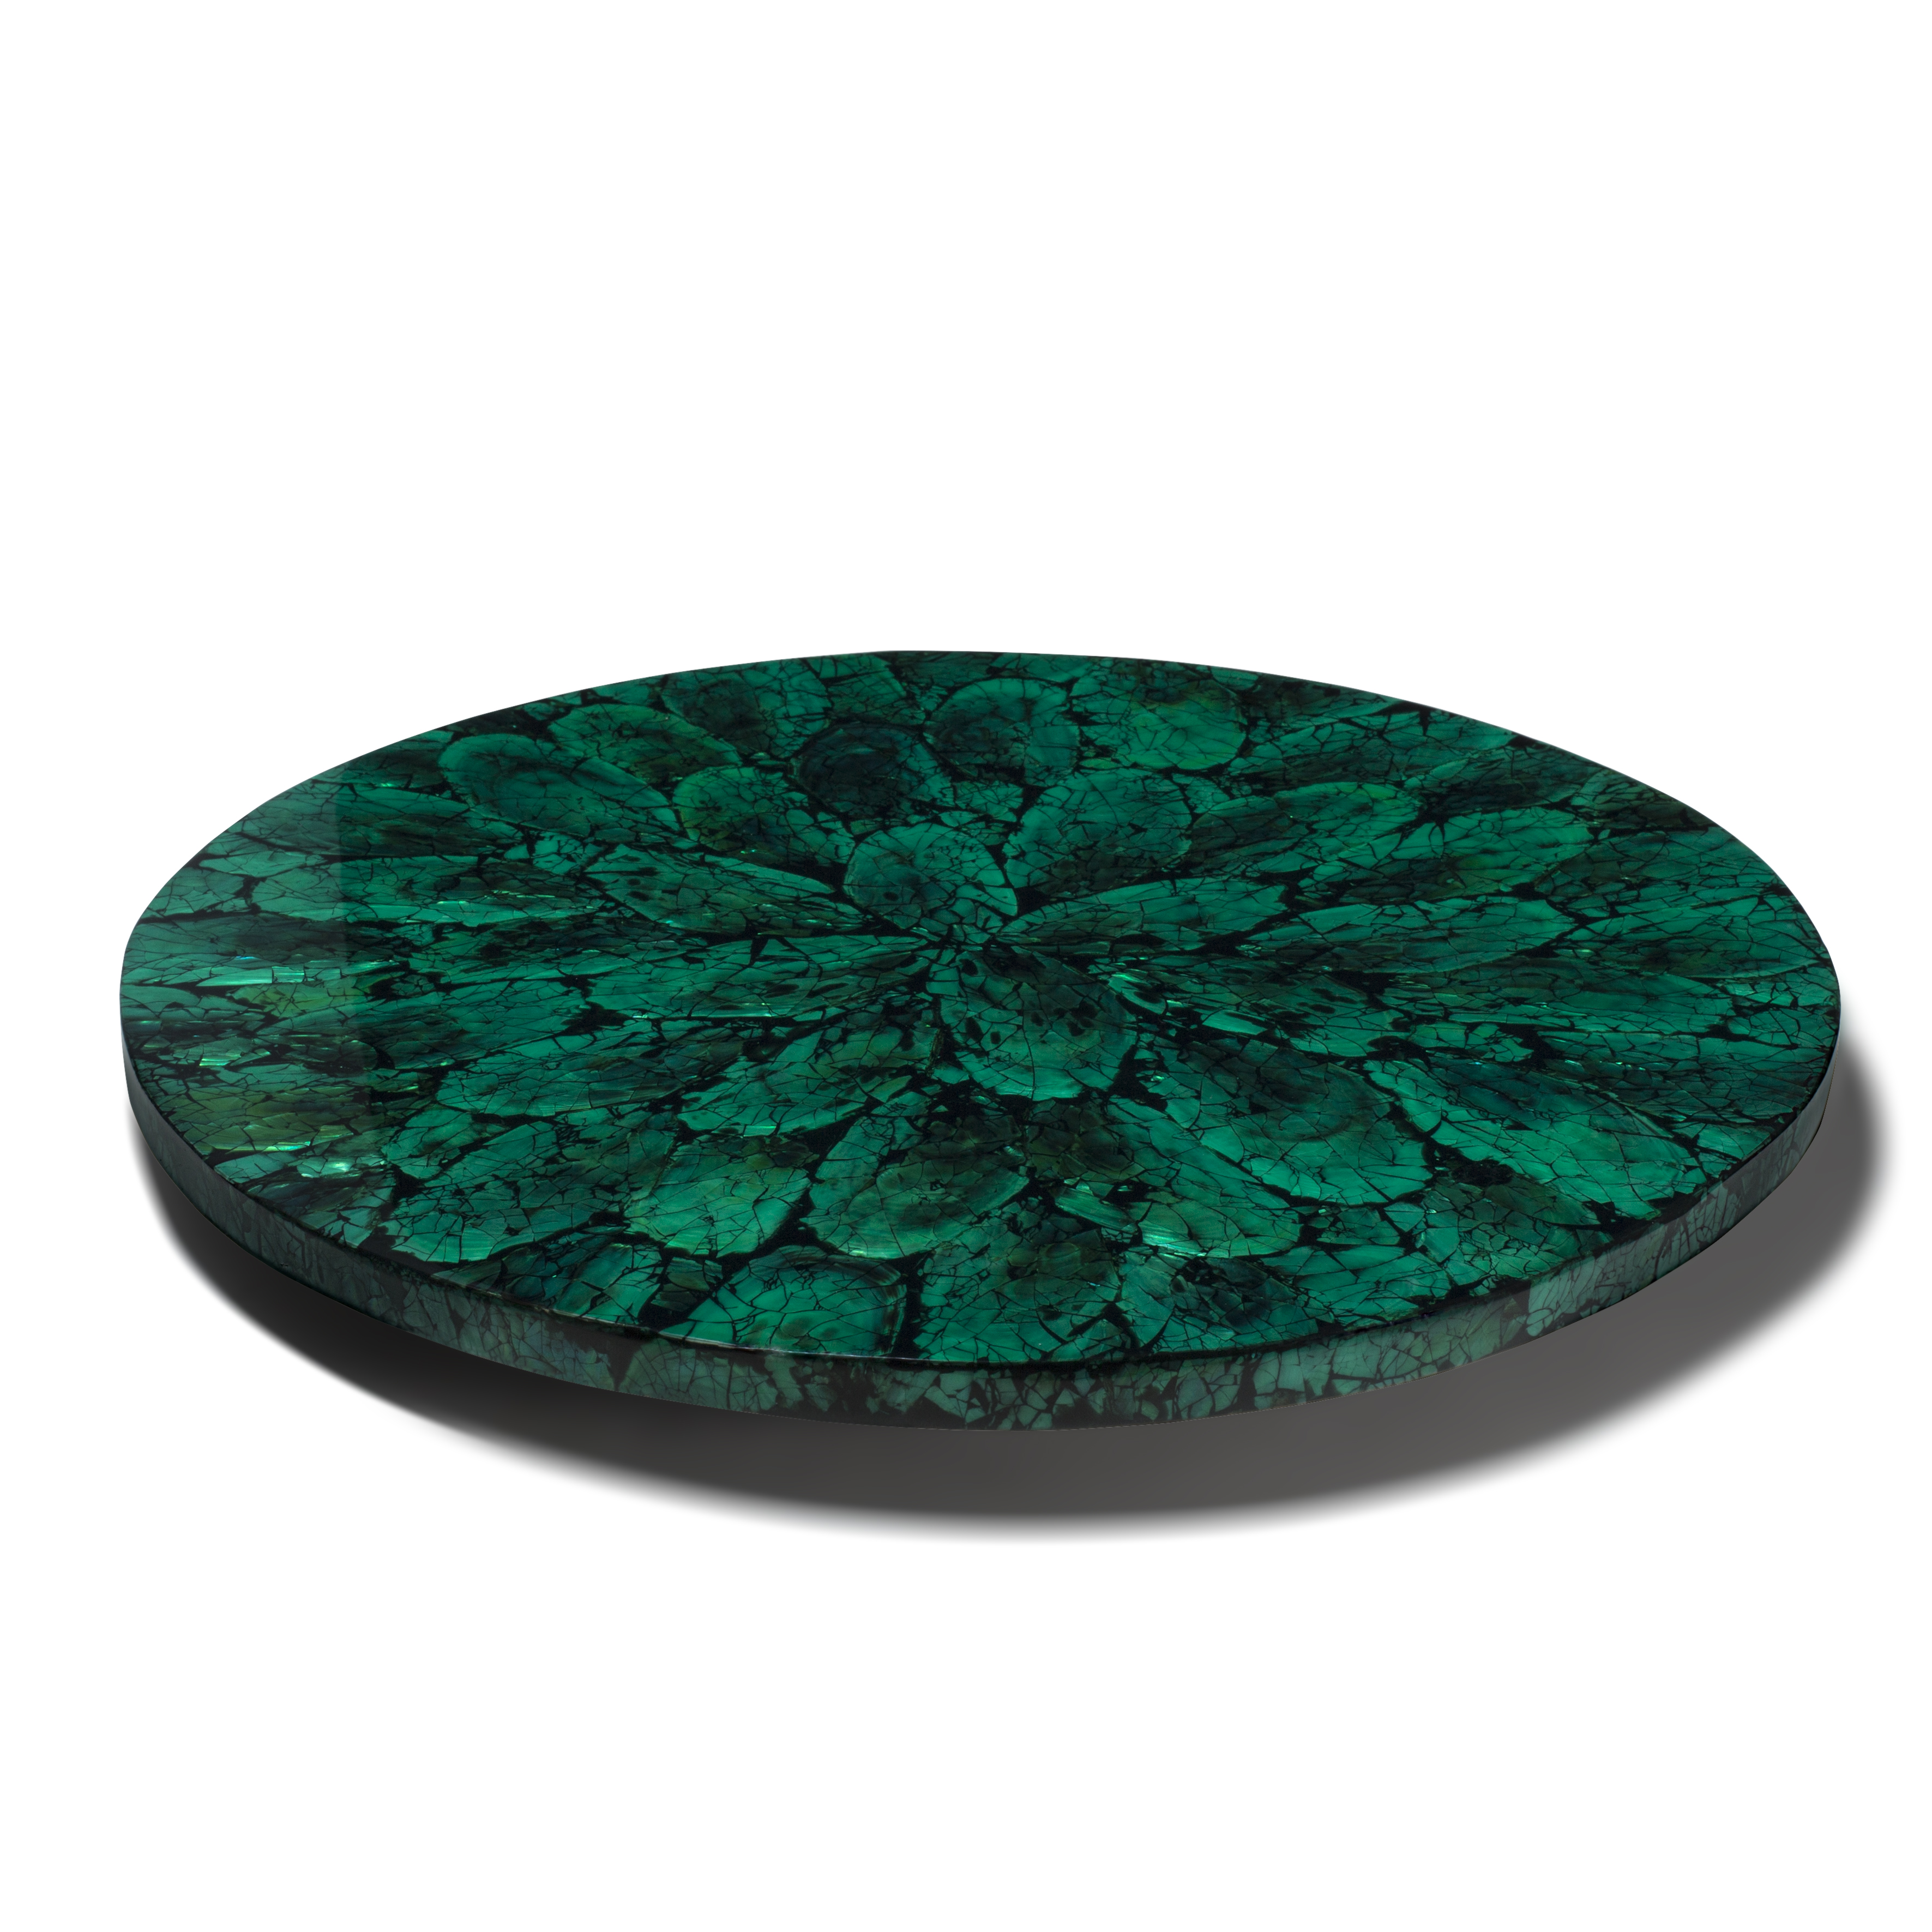 Mother of Pearl - Green Revolving Tray